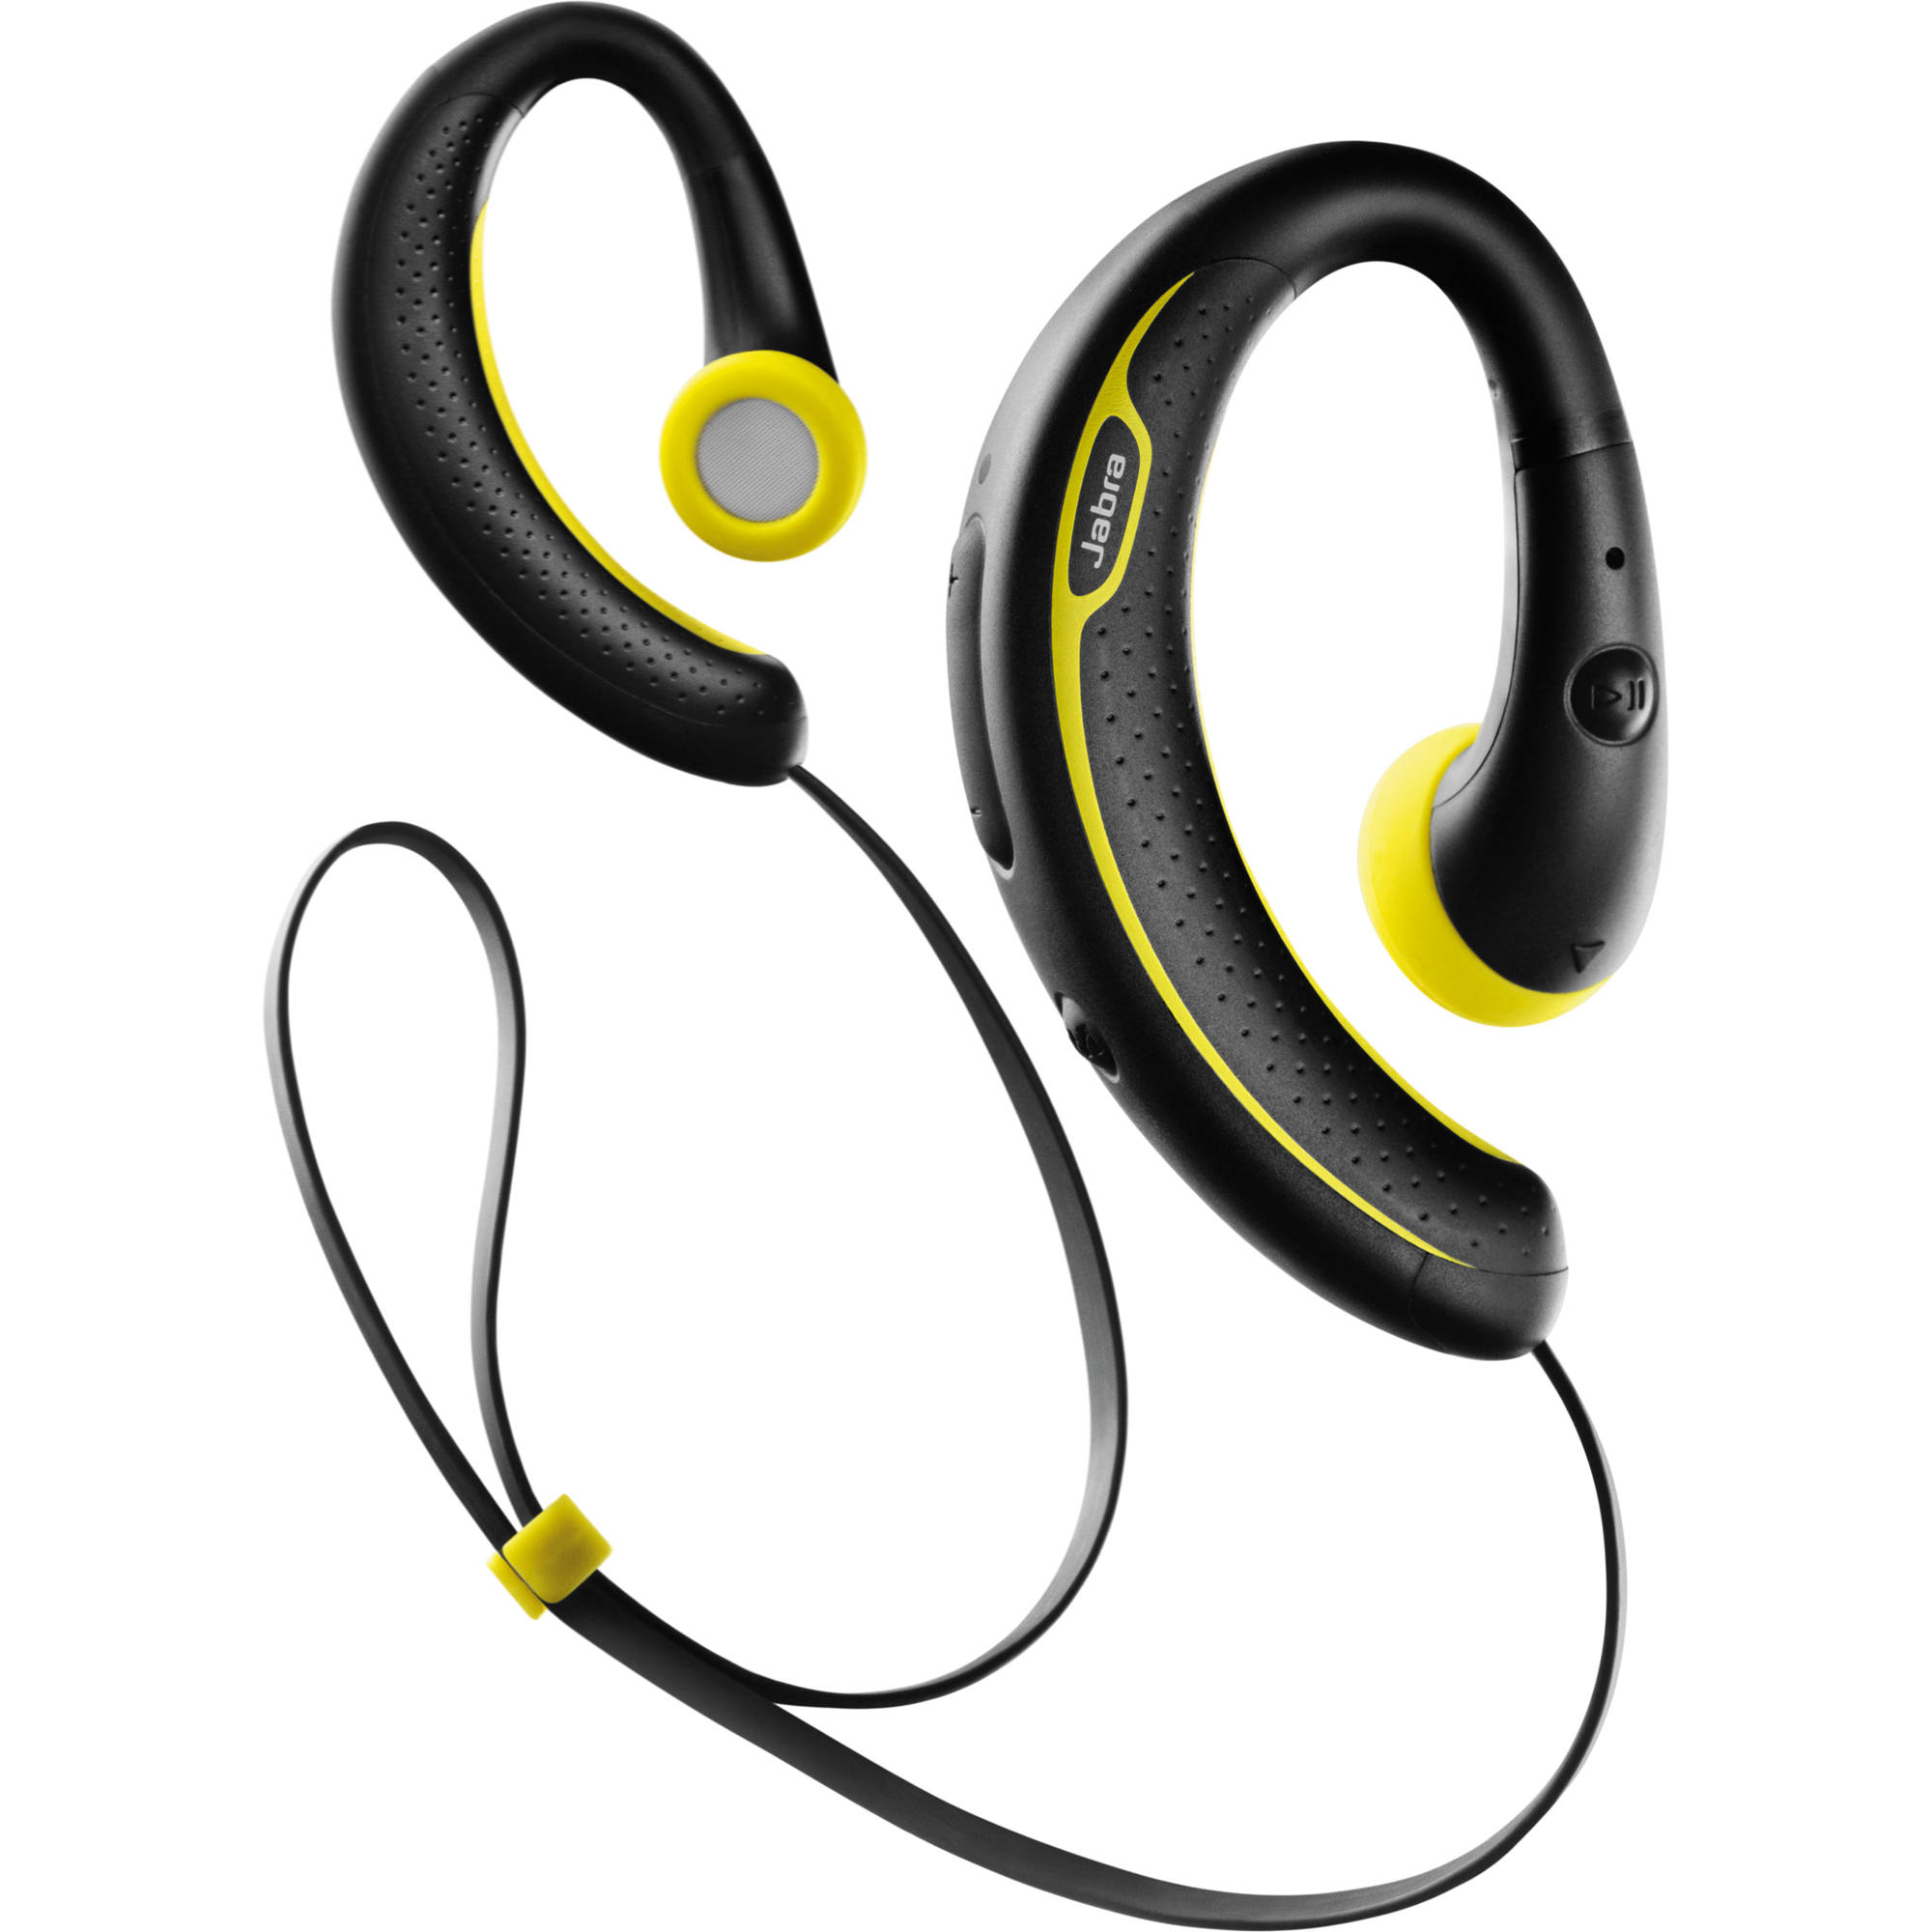 jabra sport wireless bluetooth headset 100 96600003 02 b h. Black Bedroom Furniture Sets. Home Design Ideas